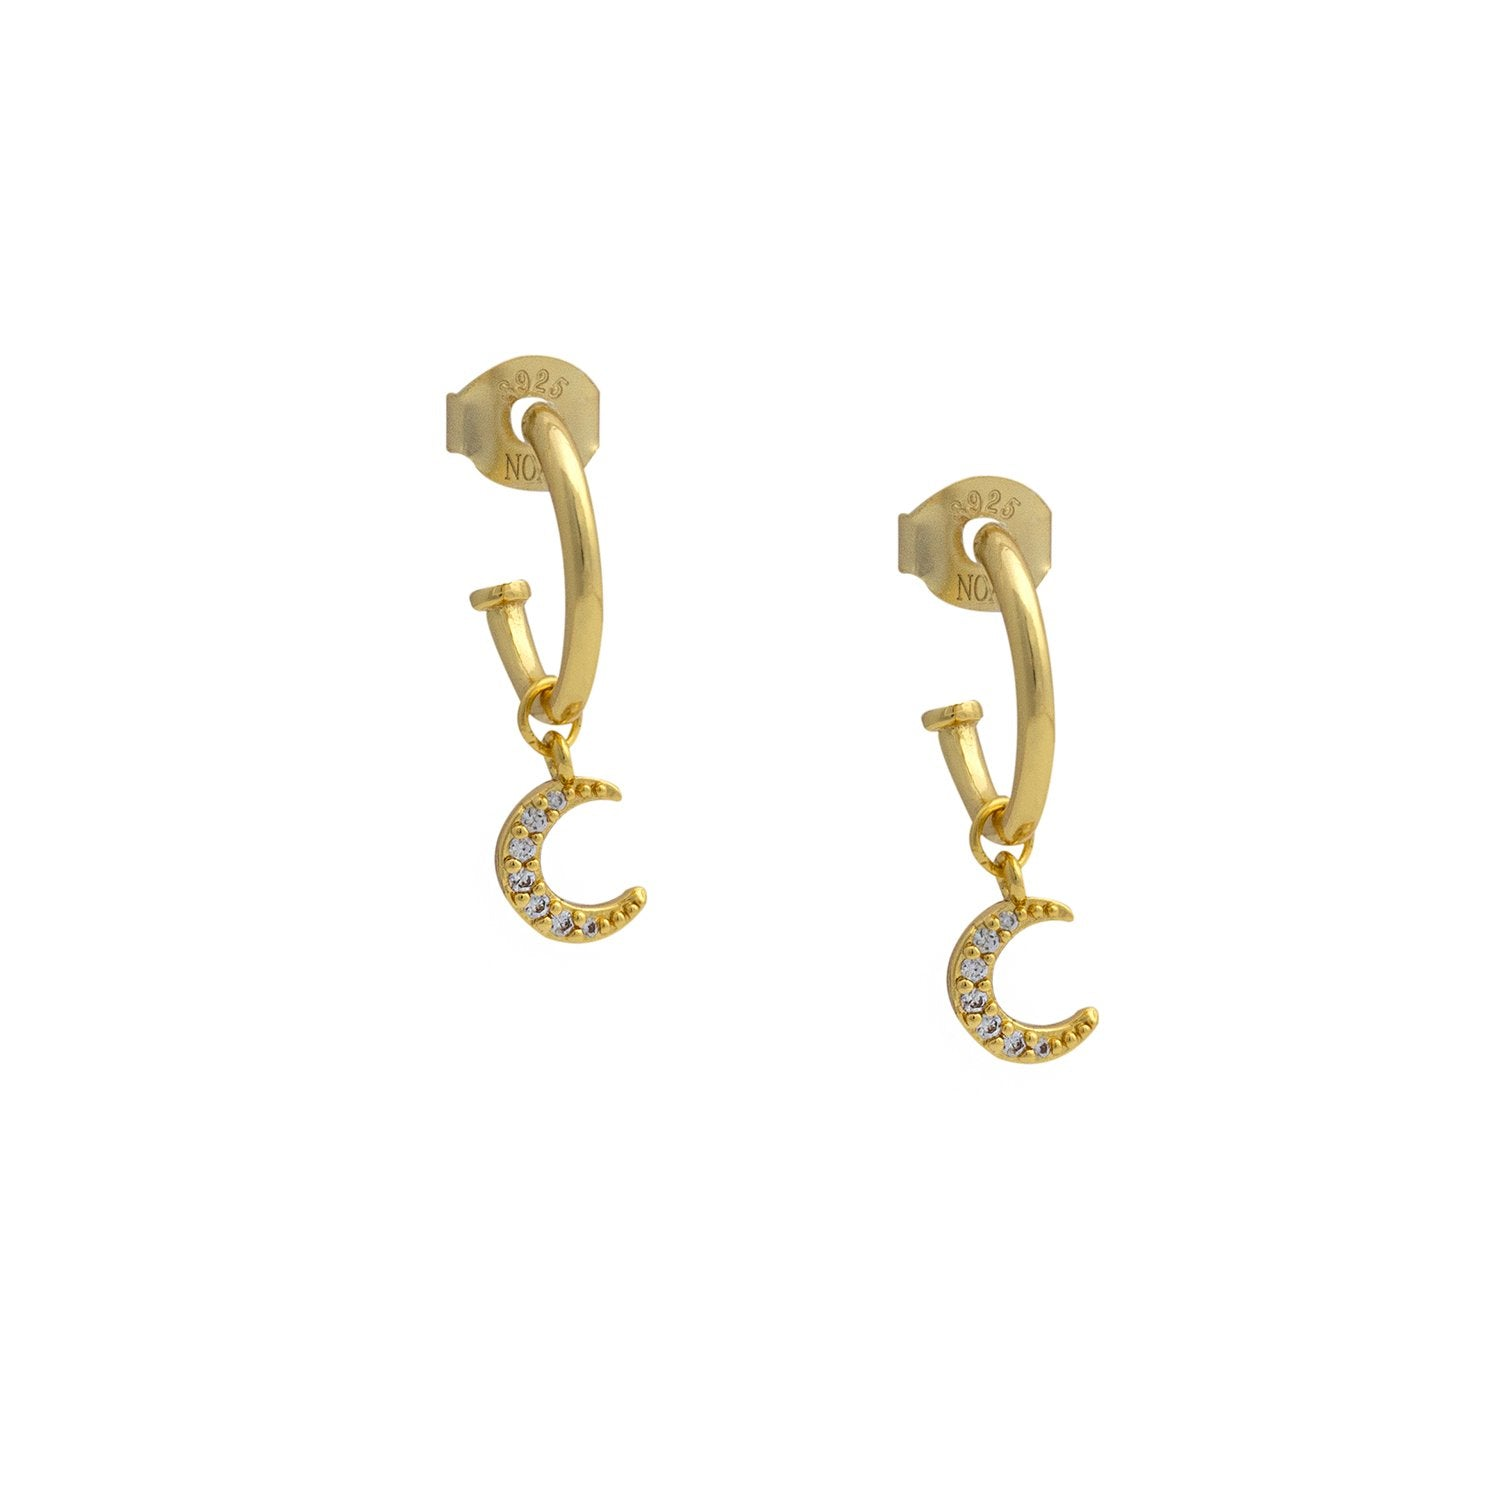 MOON GOLD HOOPS